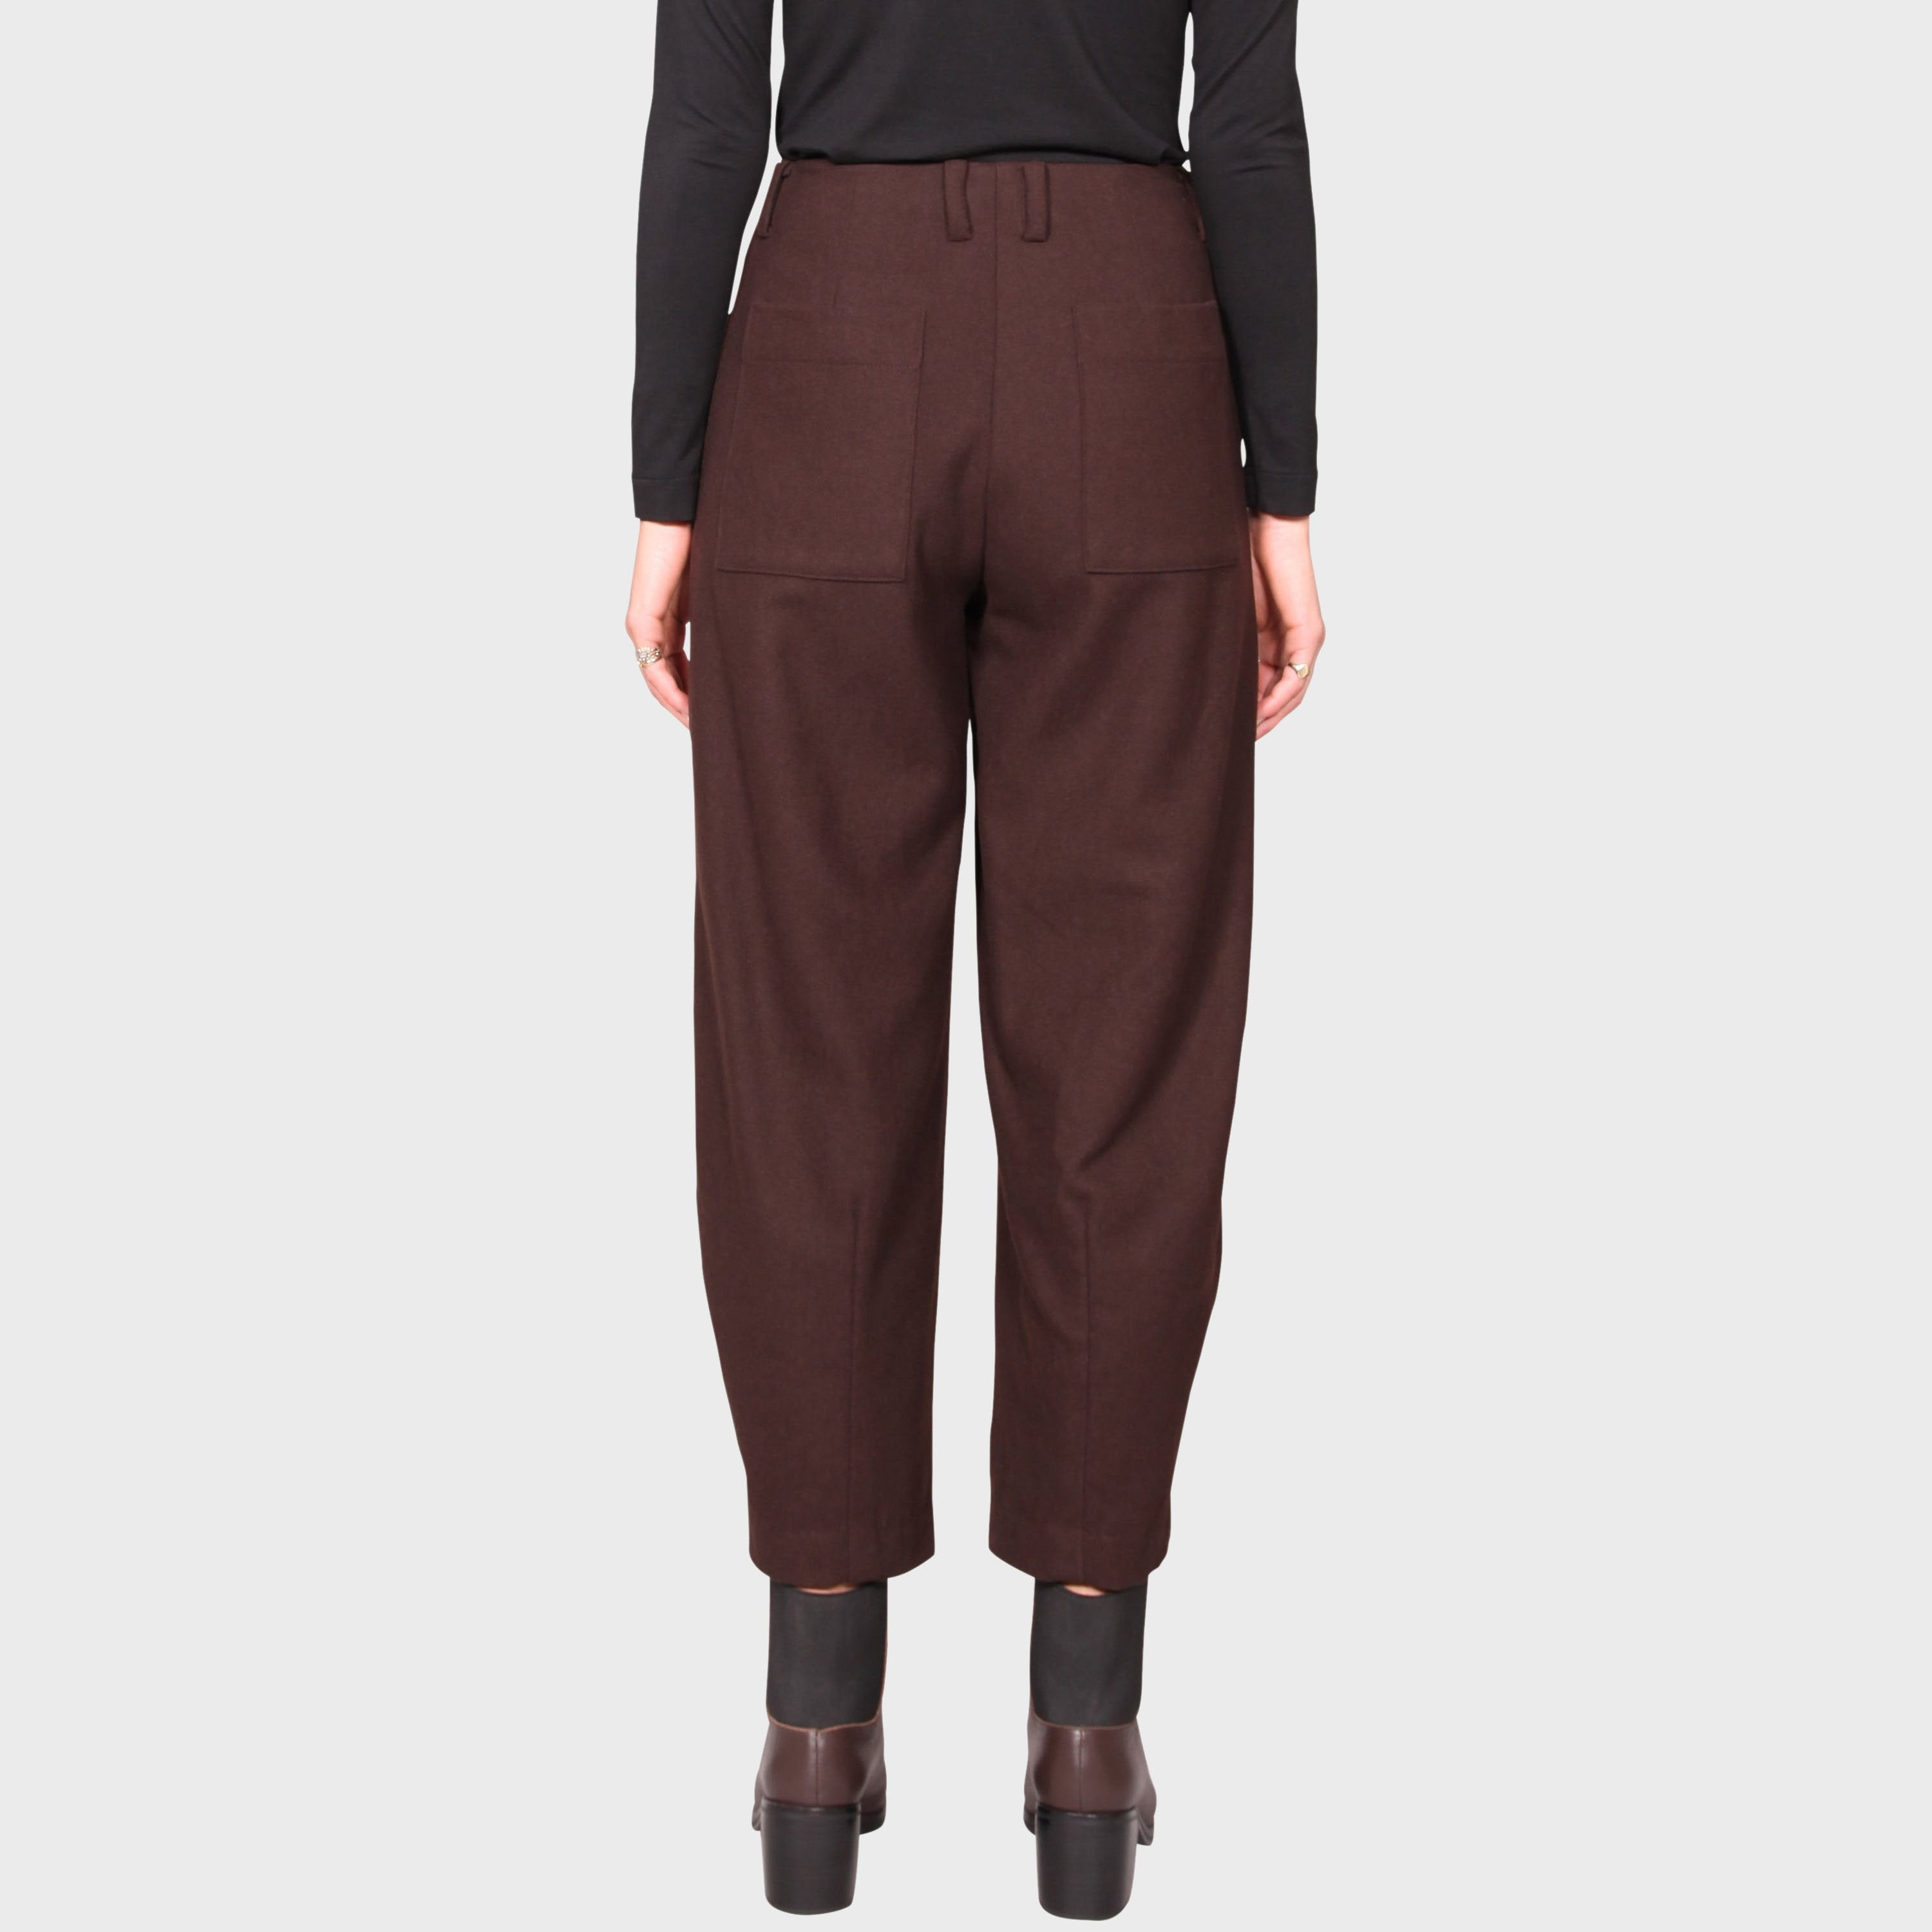 FINLEY PANT / CHOCOLATE